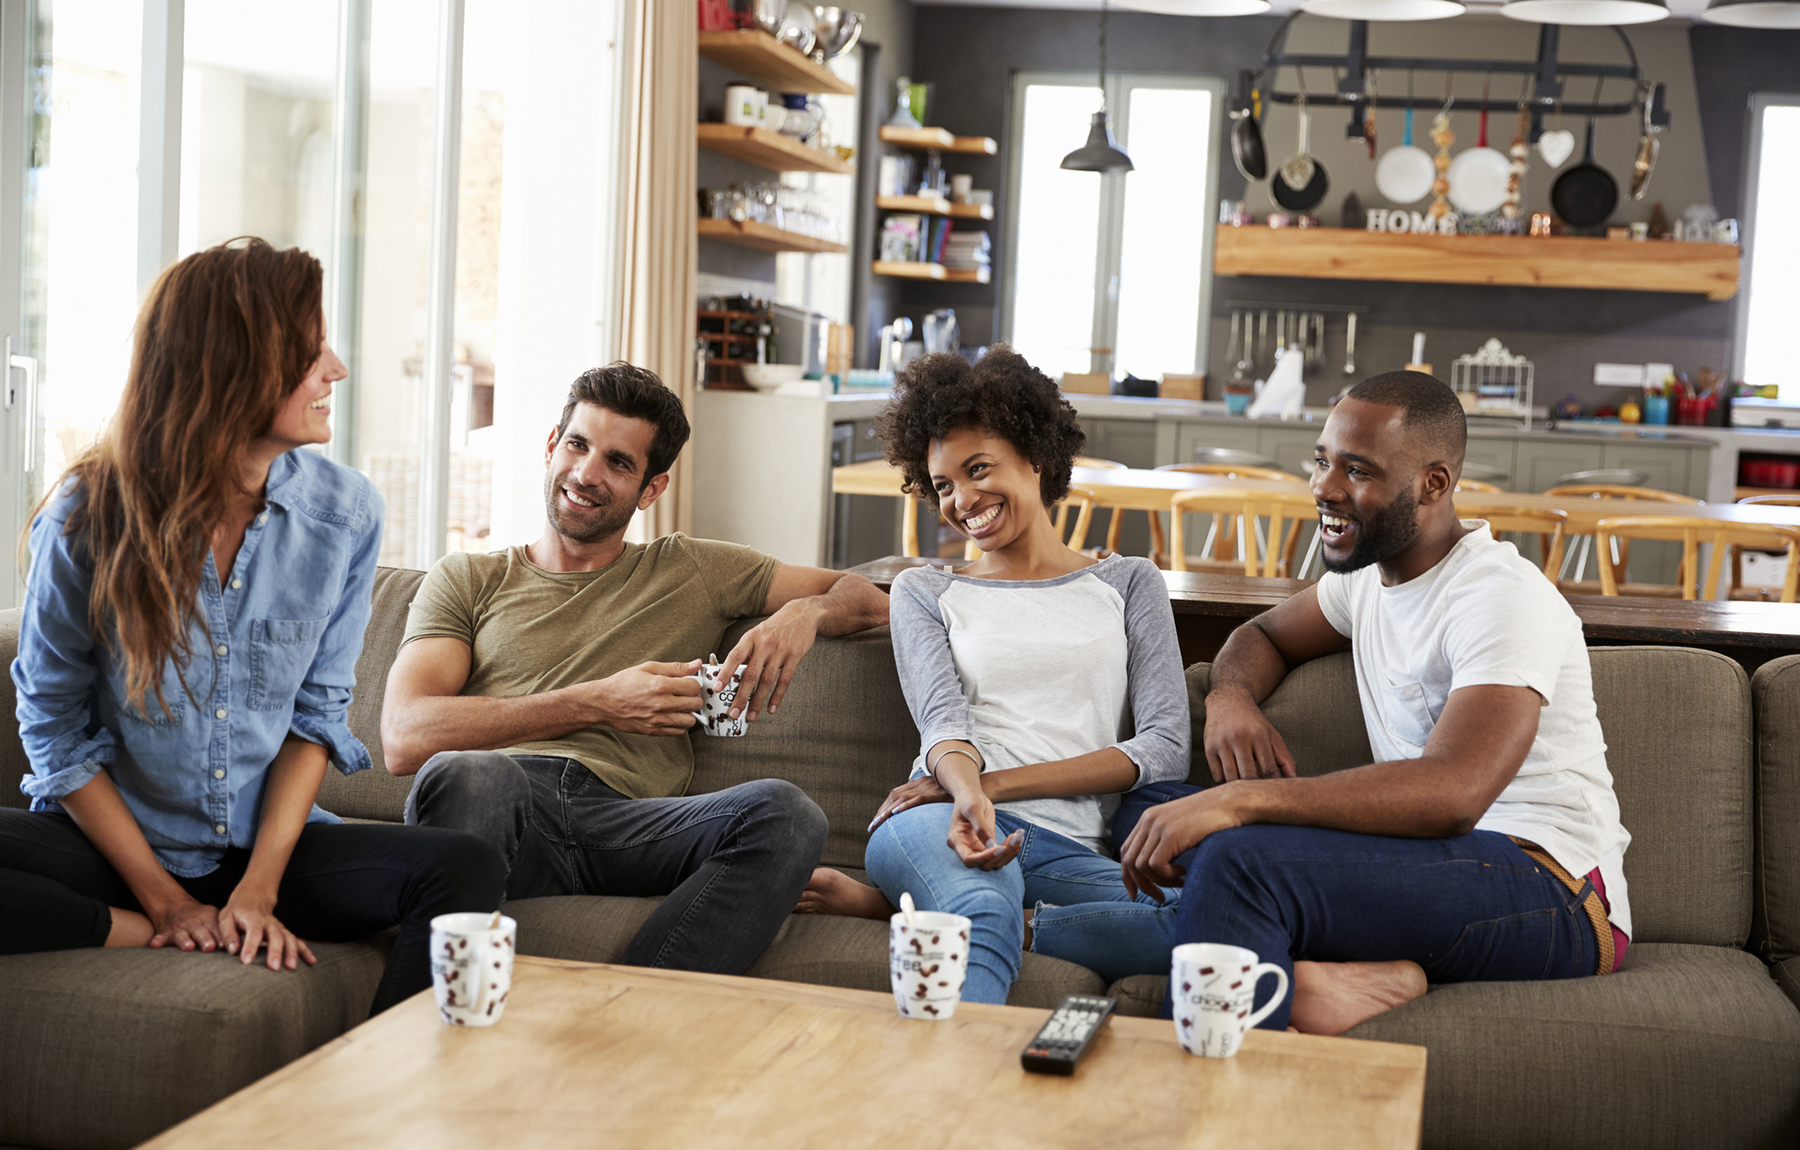 8 Questions Every Church Should Answer About a Small Groups Model